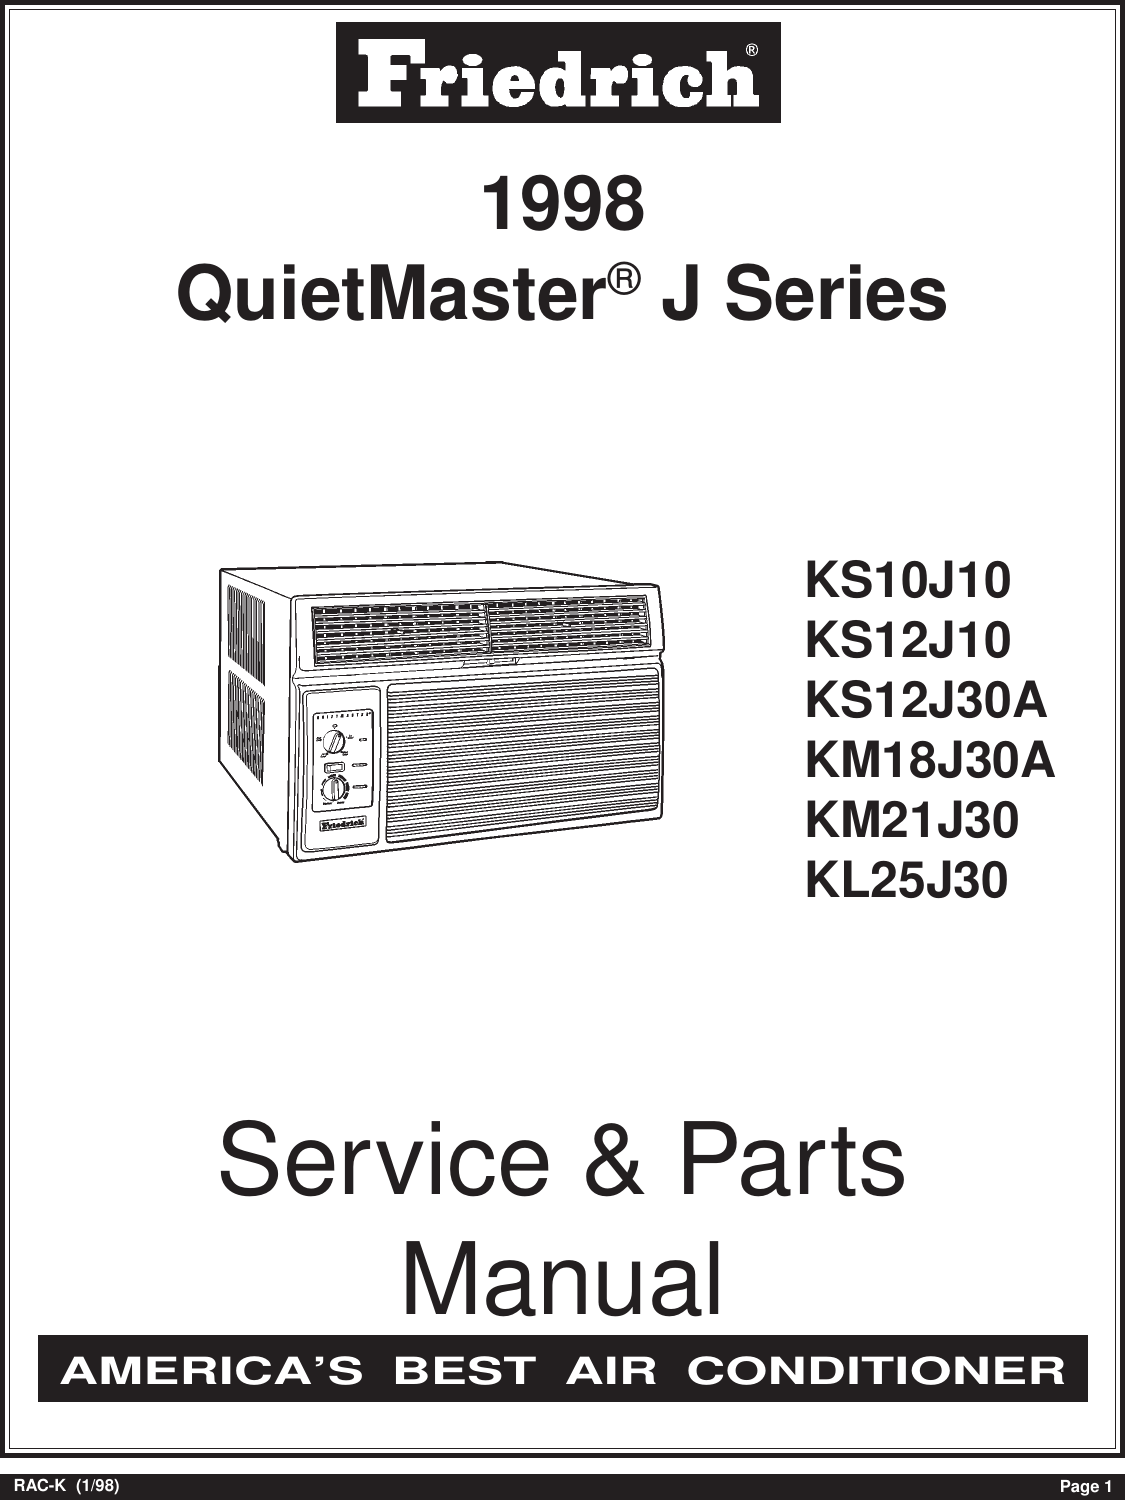 Friedrich Air Conditioner Kl25j30 Users Manual Rac K98 Conditioners Wiring Diagram